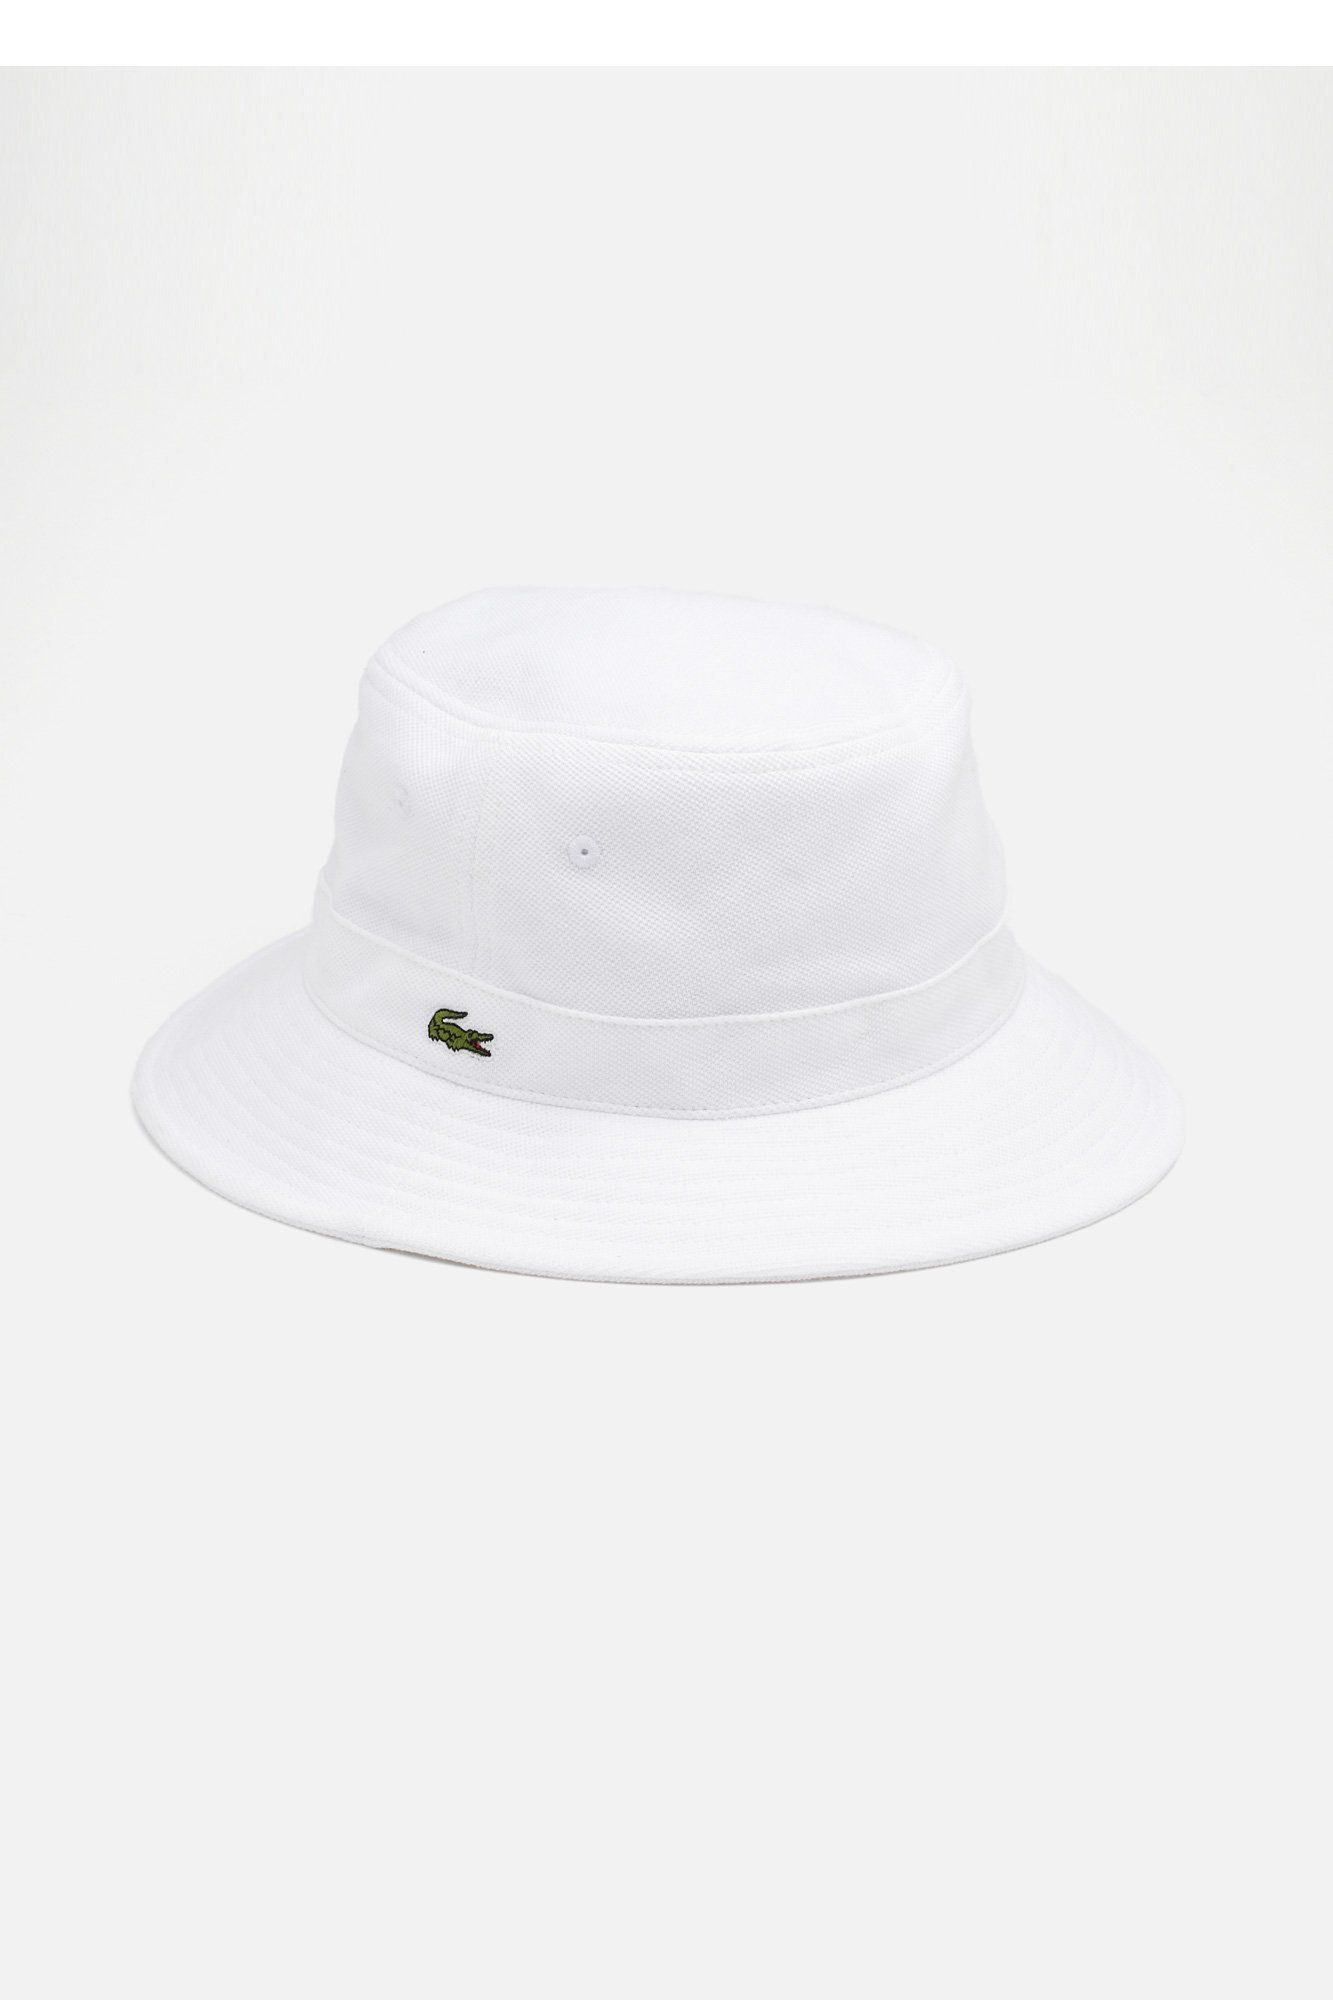 02166c16edd Lacoste Men s Pique Bucket Cap   Caps   Hats